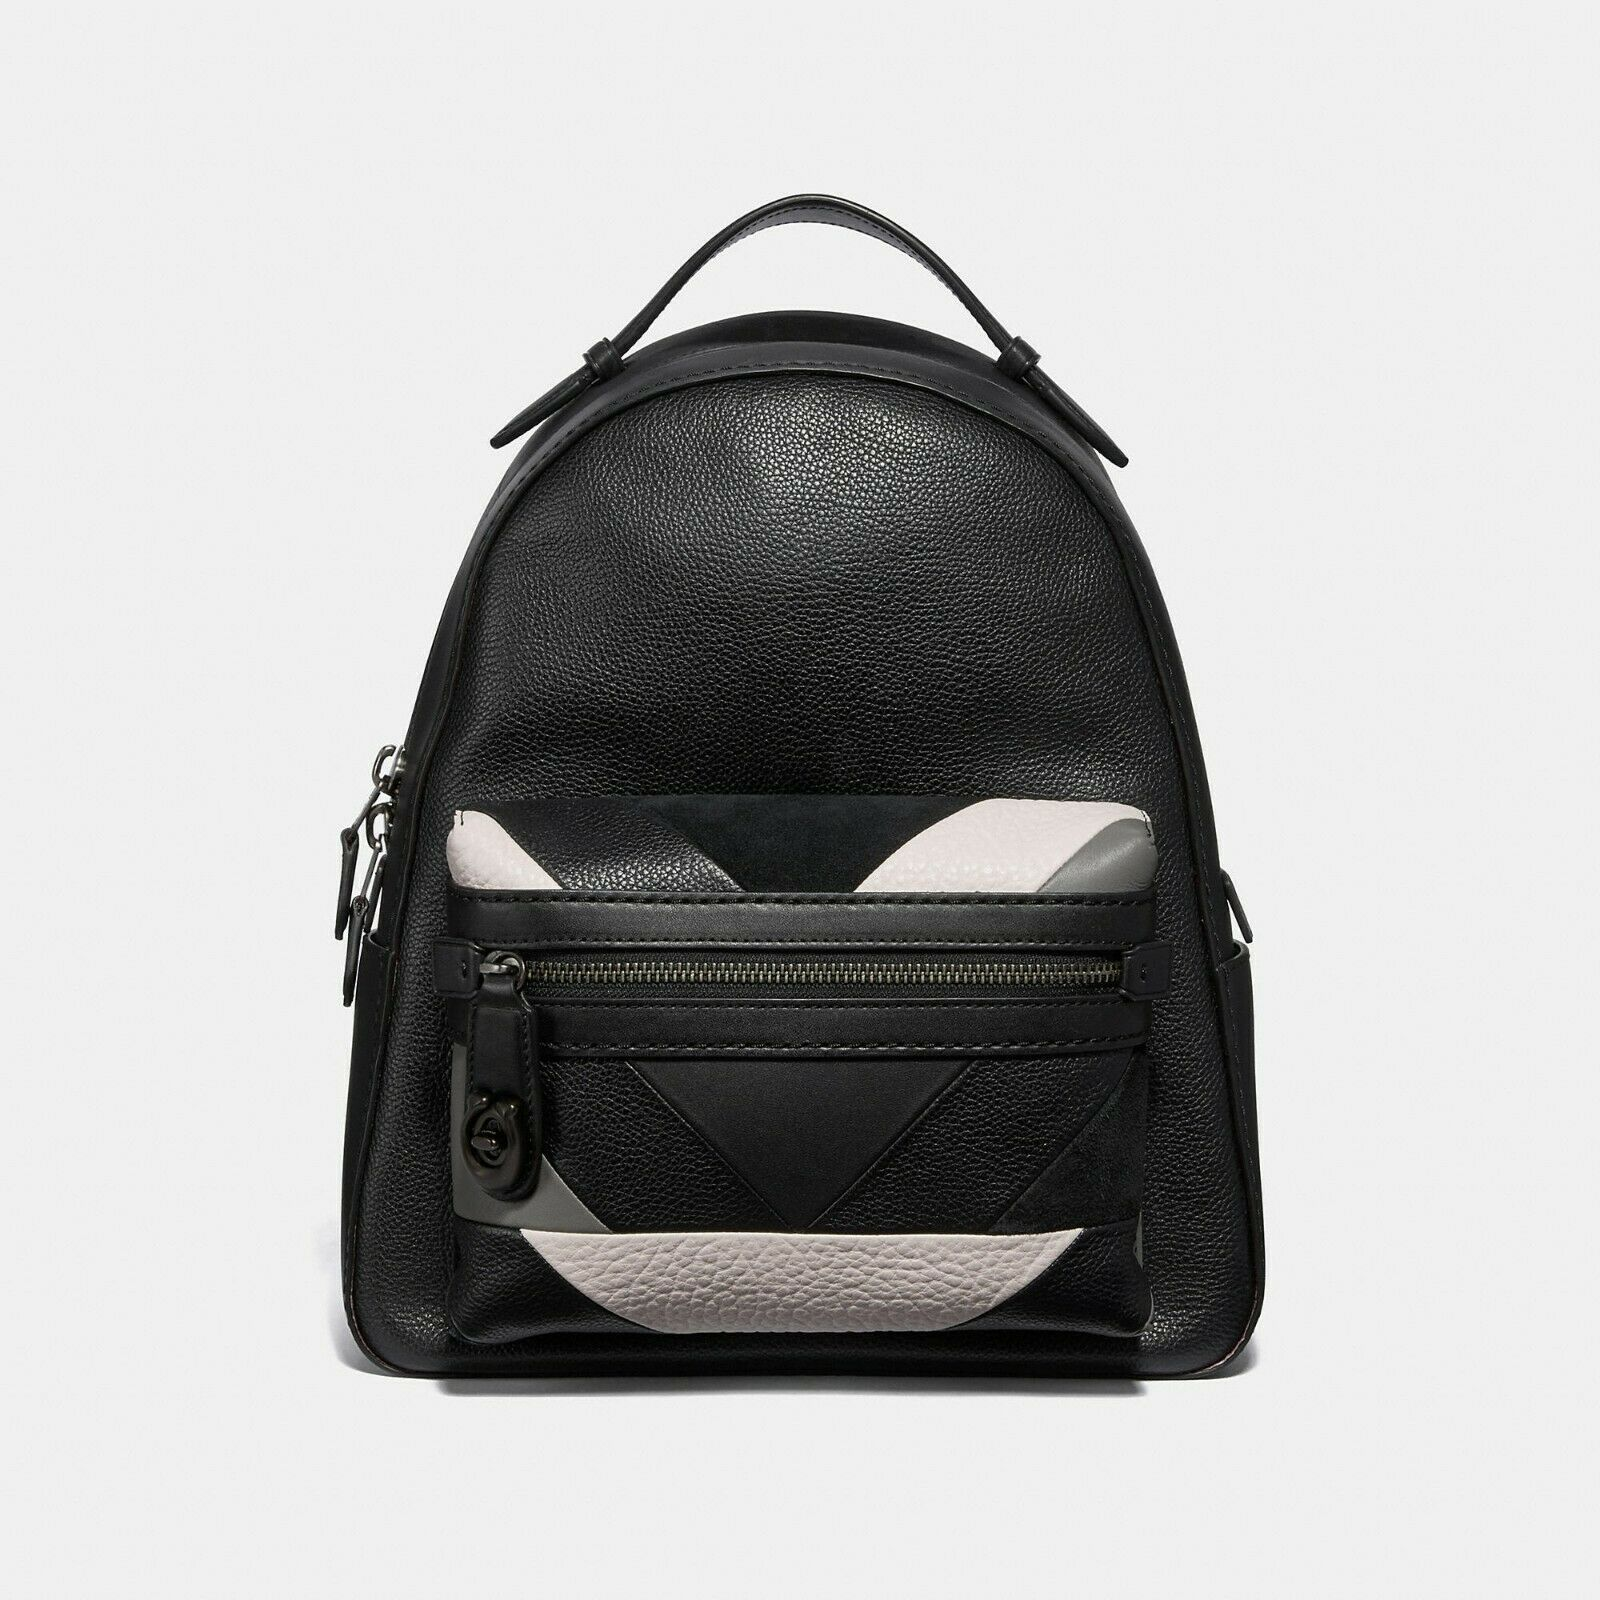 Primary image for Coach 38674 Patch backpack NWT